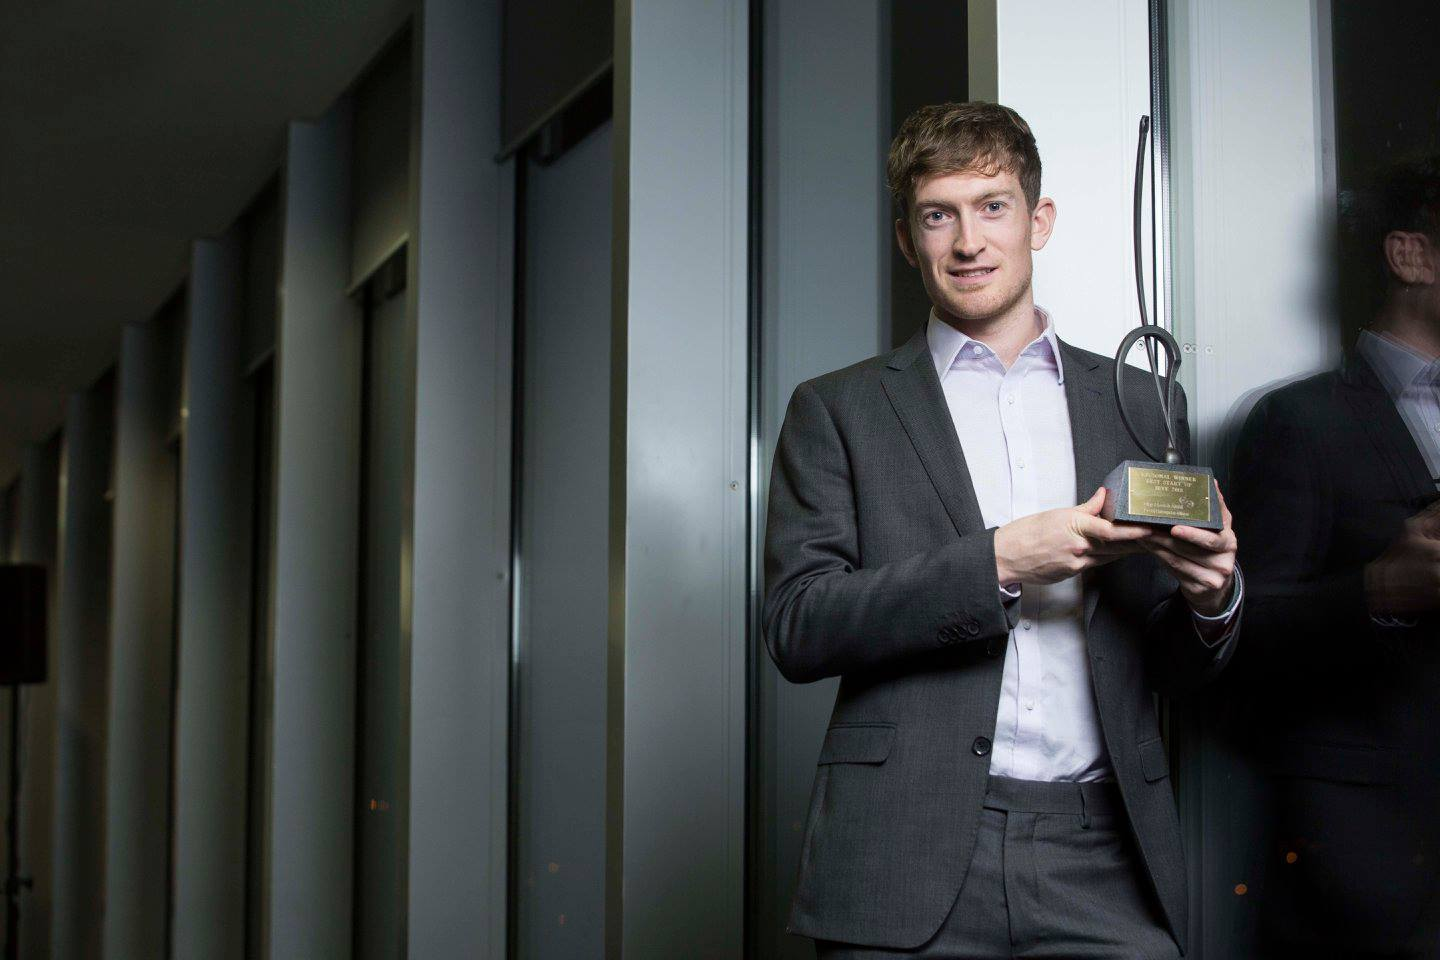 Conor Lyden, CEO, Trustap wins in Ireland's Best Young Entrepreneur Regional Finals